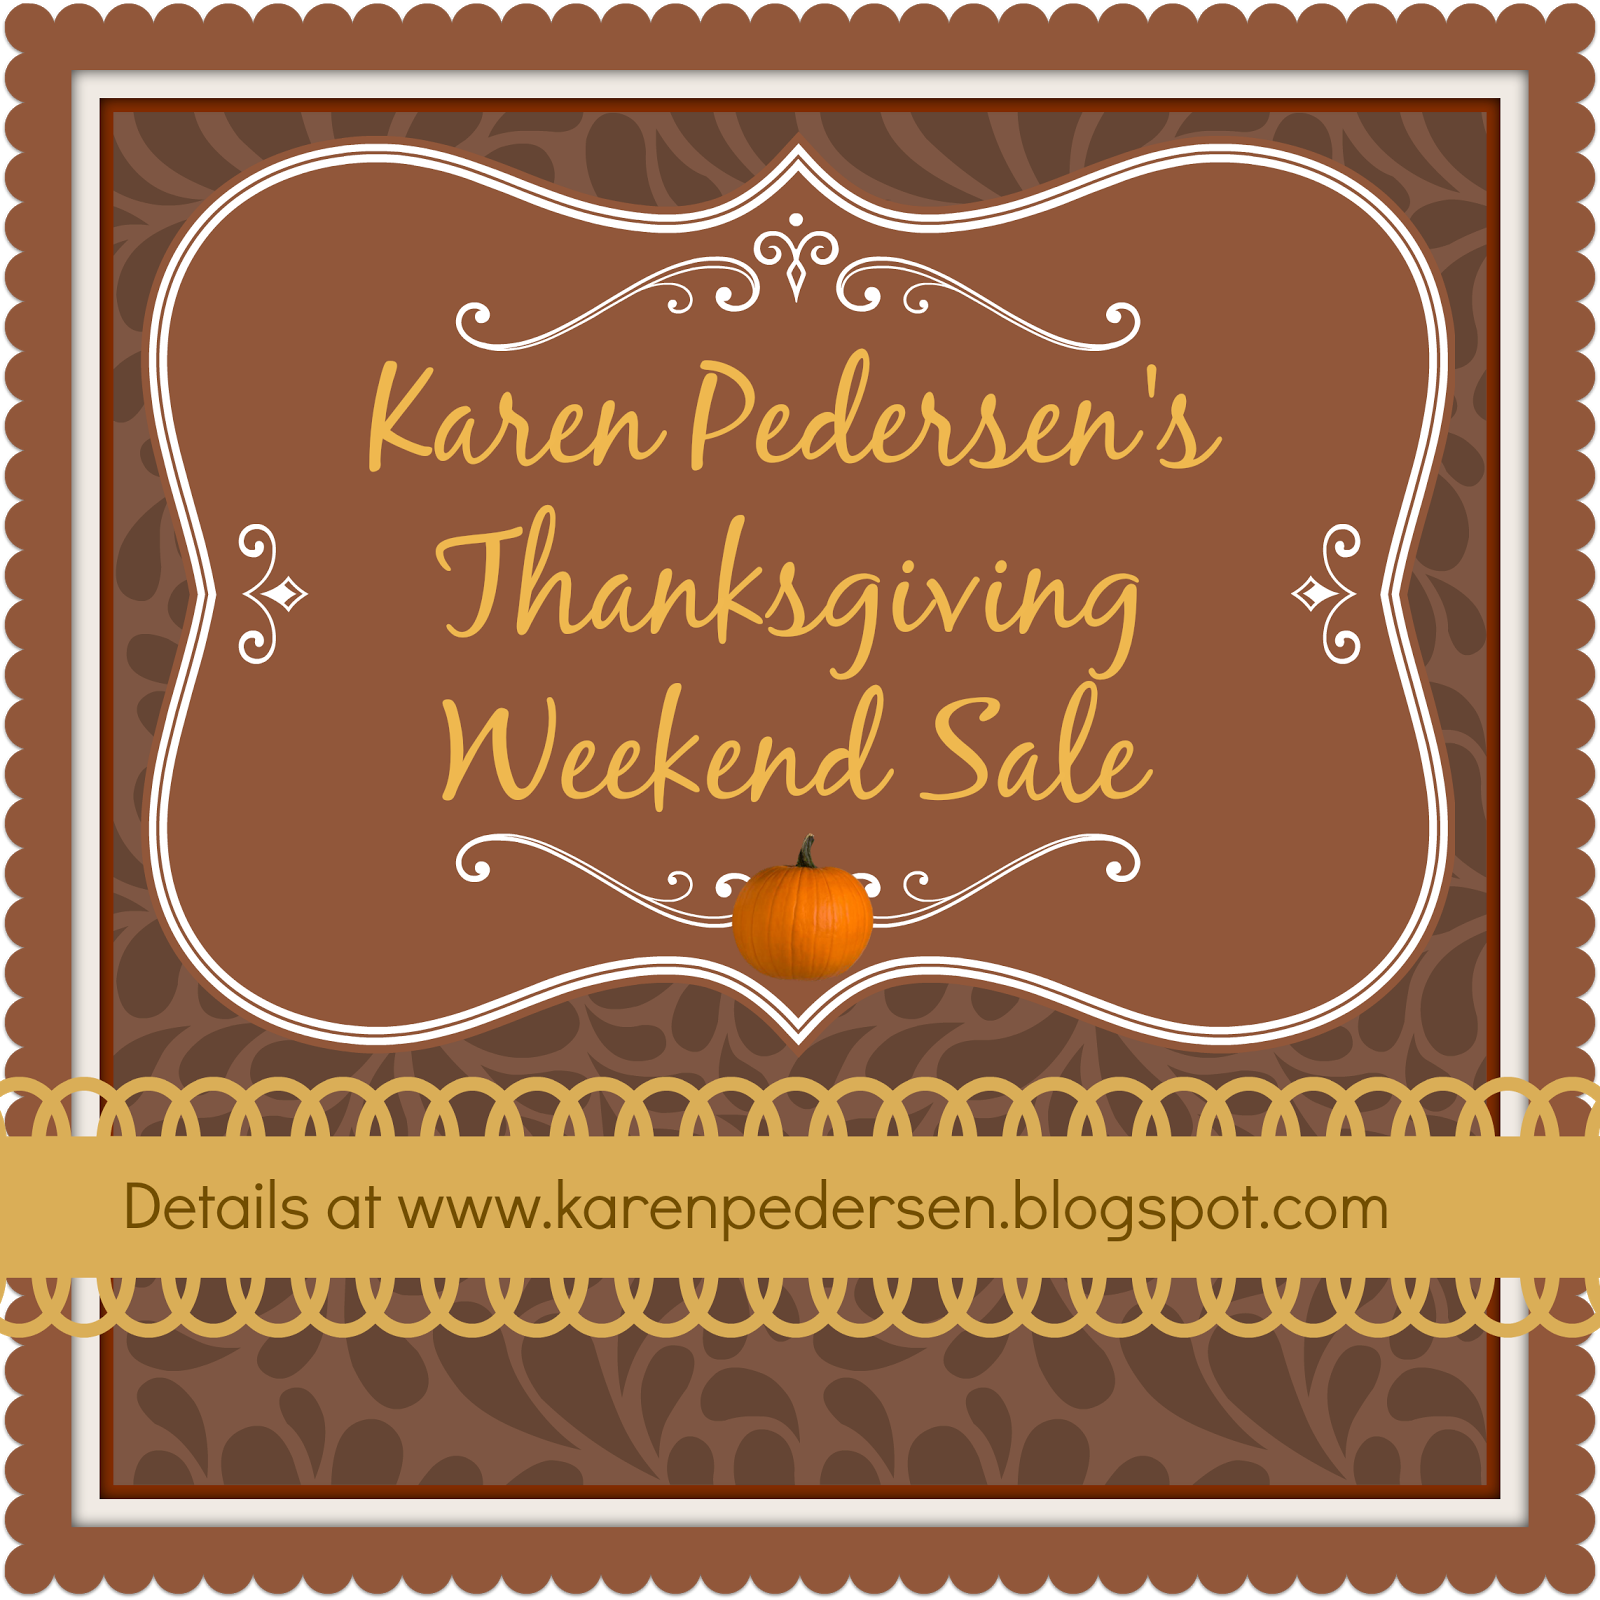 Exclusive Thanksgiving Weekend Sale from Karen Pedersen